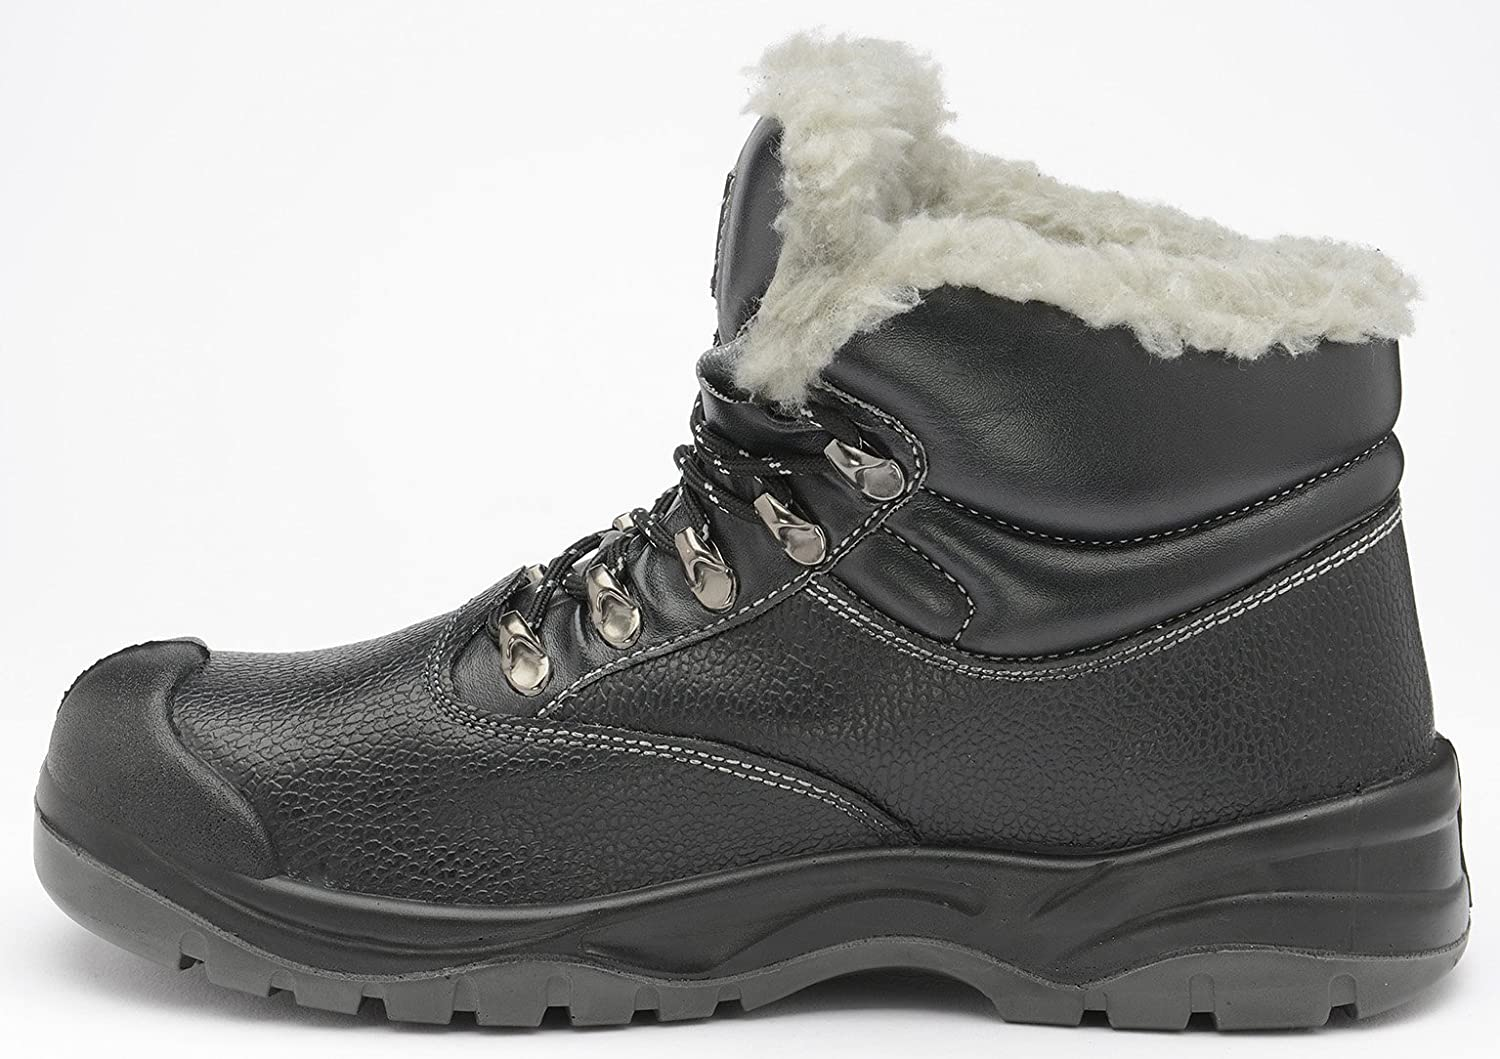 3d65d6504a7 Zephyr Z001F S3 SRC Mid Cut Steel Toe Cold Work Thermal Winter Safety Boots